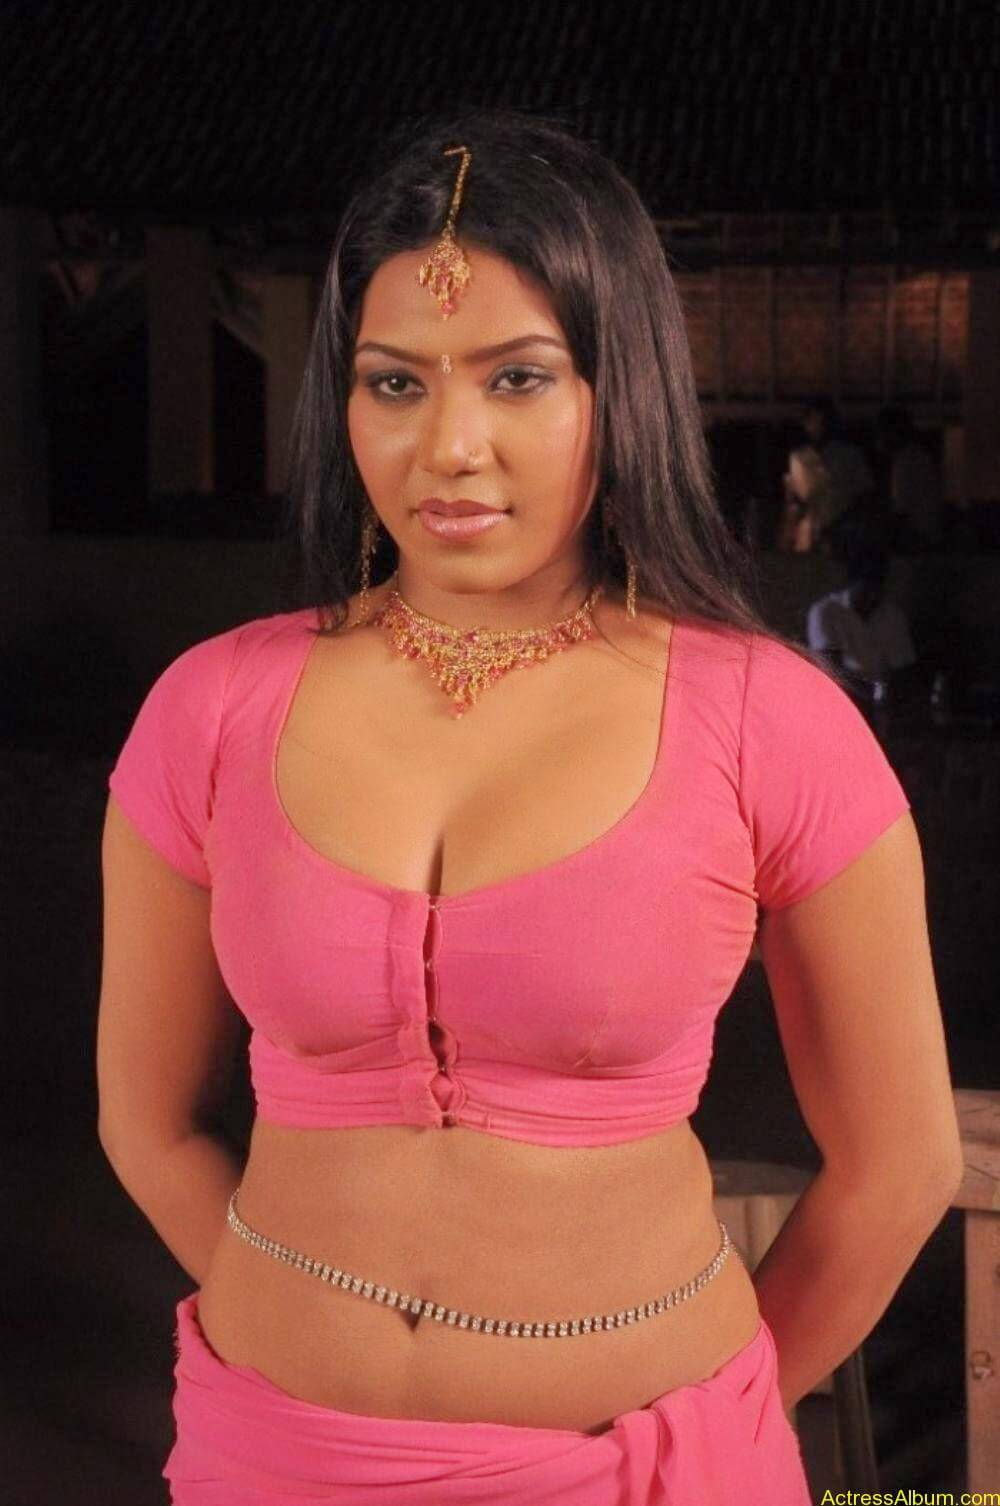 Indian desi sexy girl in churidar new - 1 1